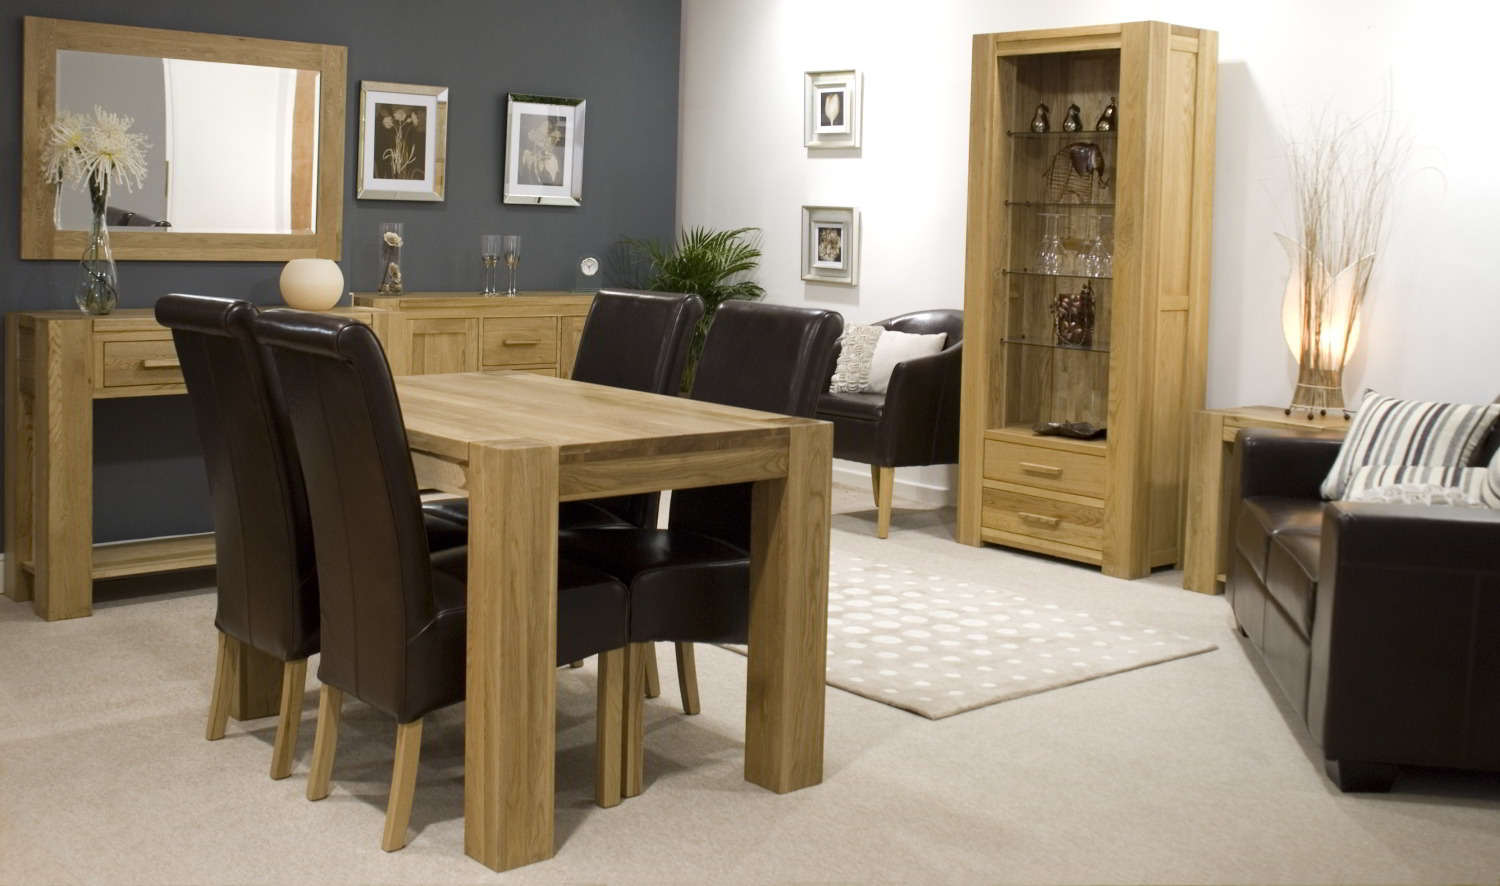 Pemberton solid oak furniture small living room office for Oak dining room chairs